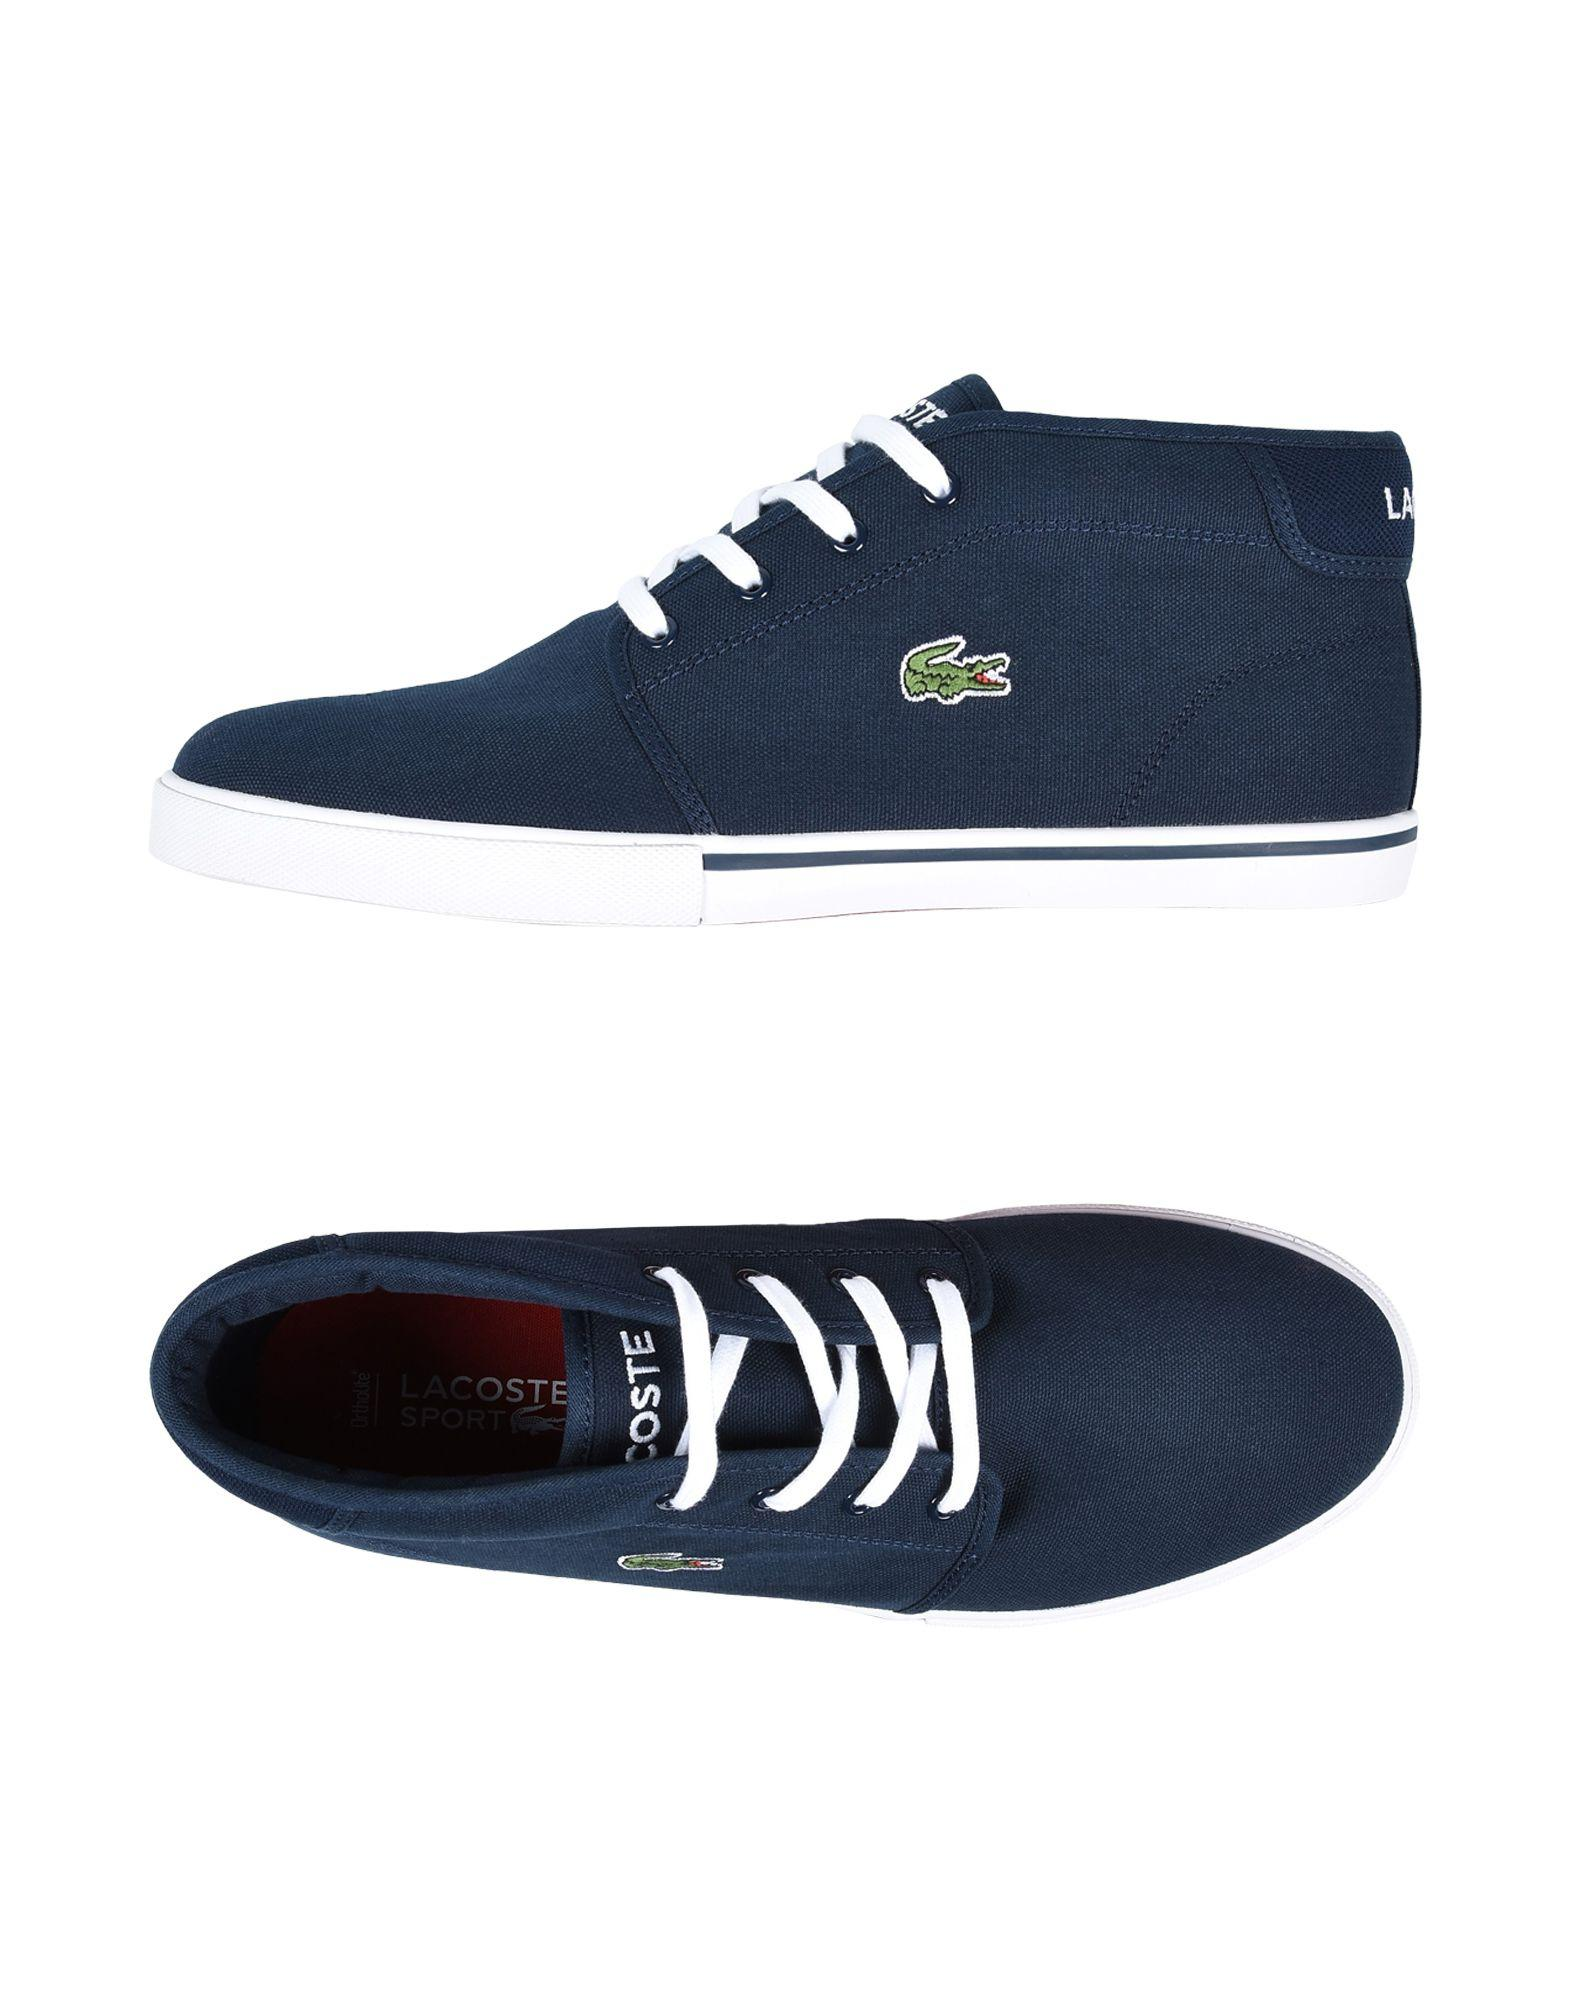 lacoste sport hightops amp sneakers in blue for men lyst